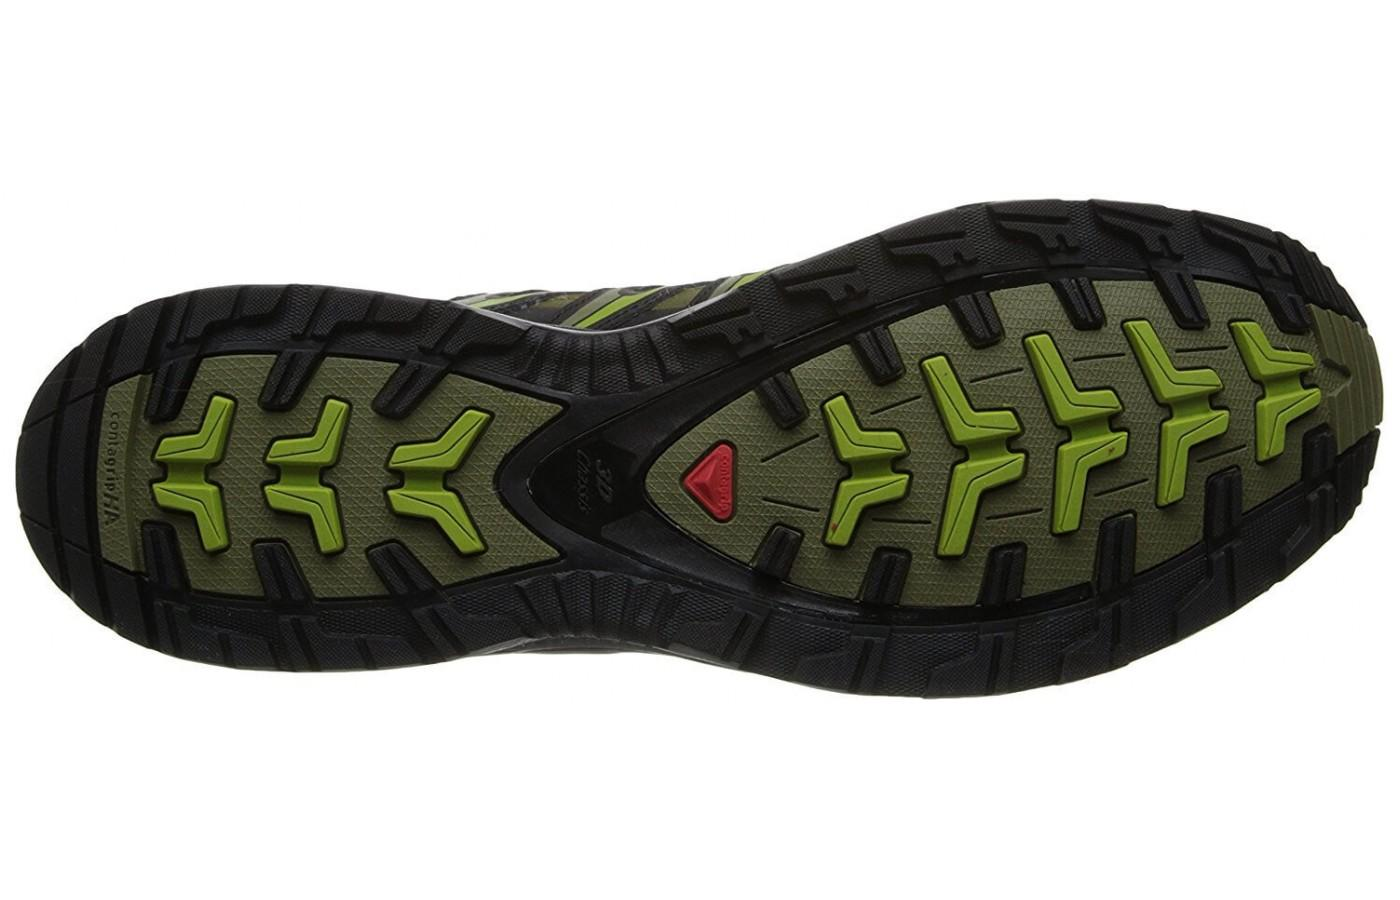 the outsole of the Salomon XA Pro 3D CS WP is made from both carbon and blown rubber and has a number of multi-directional lugs